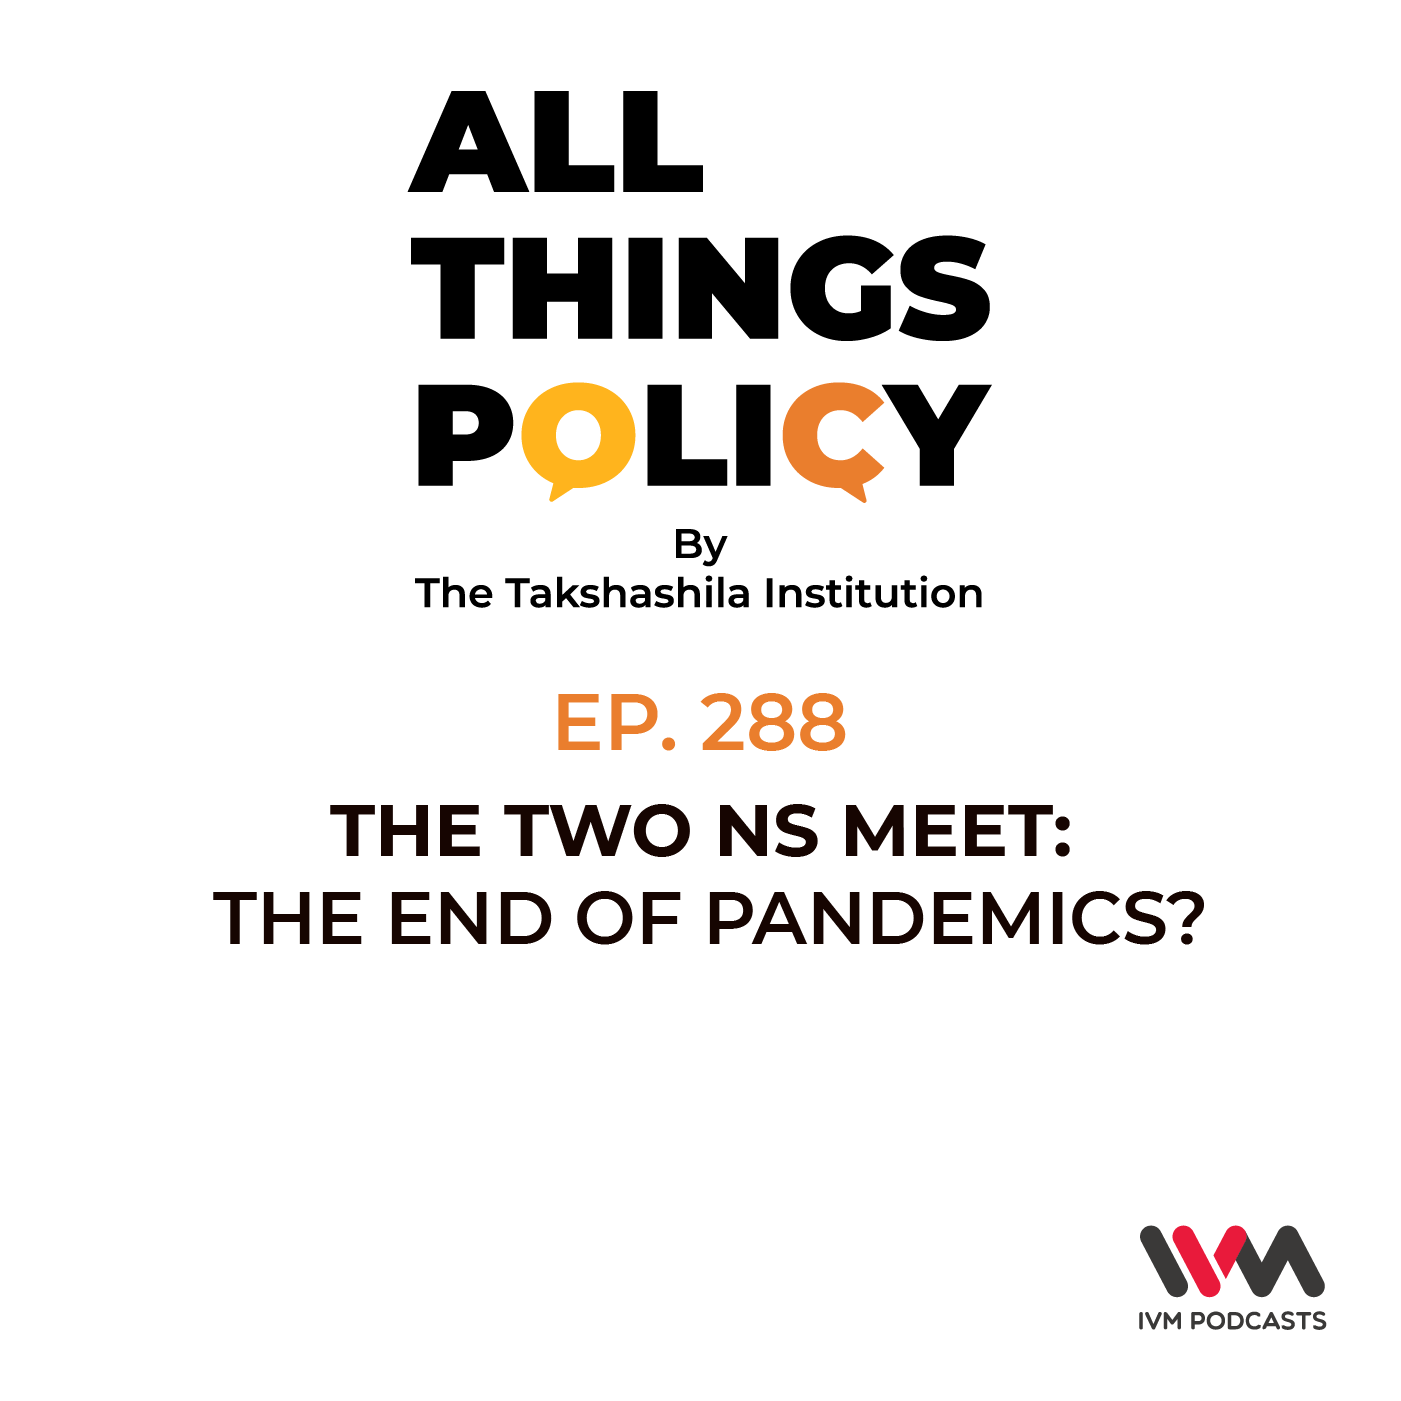 Ep. 288: The Two Ns Meet: The End of Pandemics?